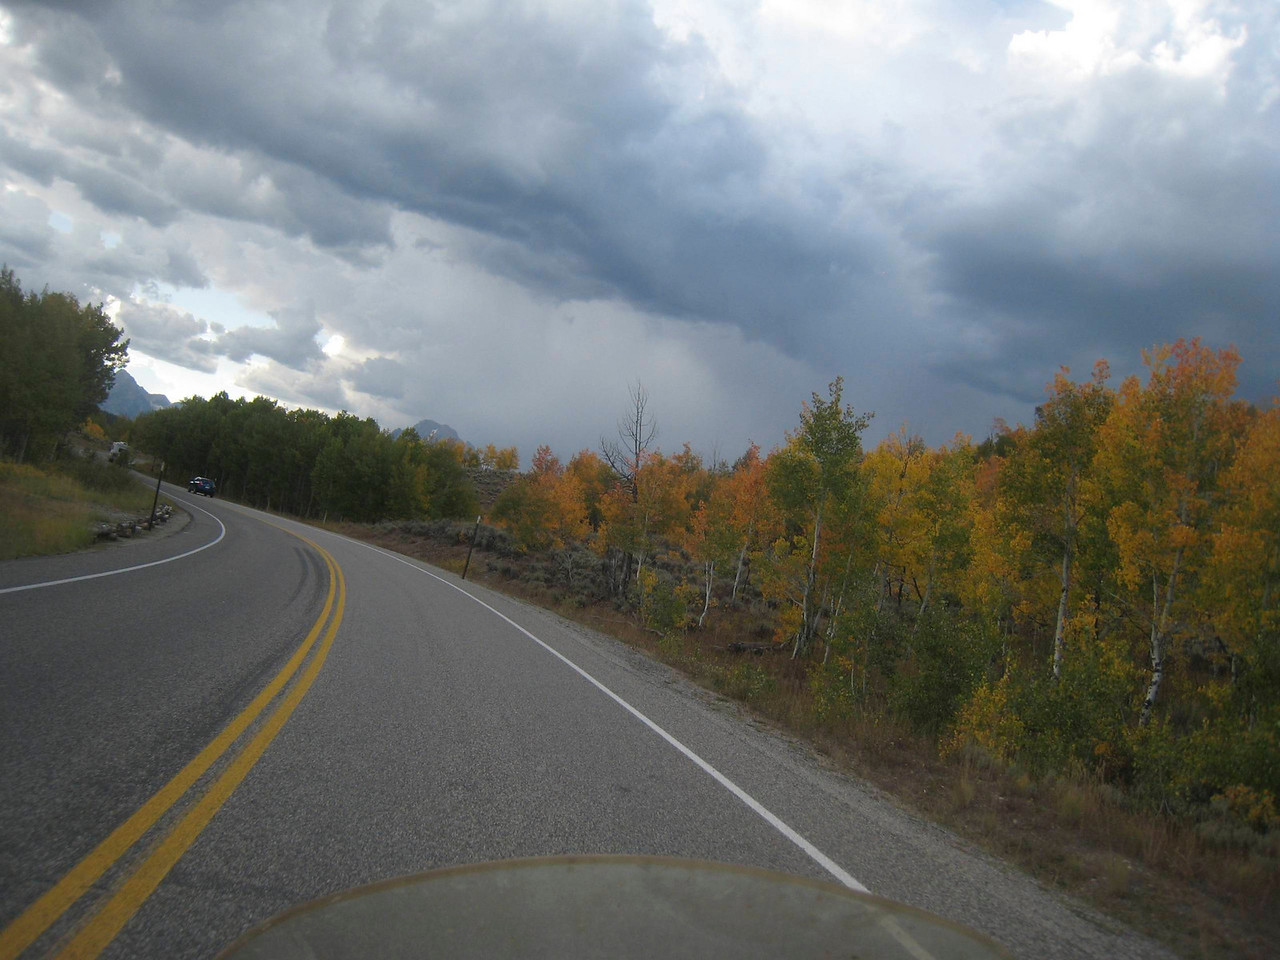 Trees starting to turn.  I expect to see much more color as I go north and experience elevation changes.